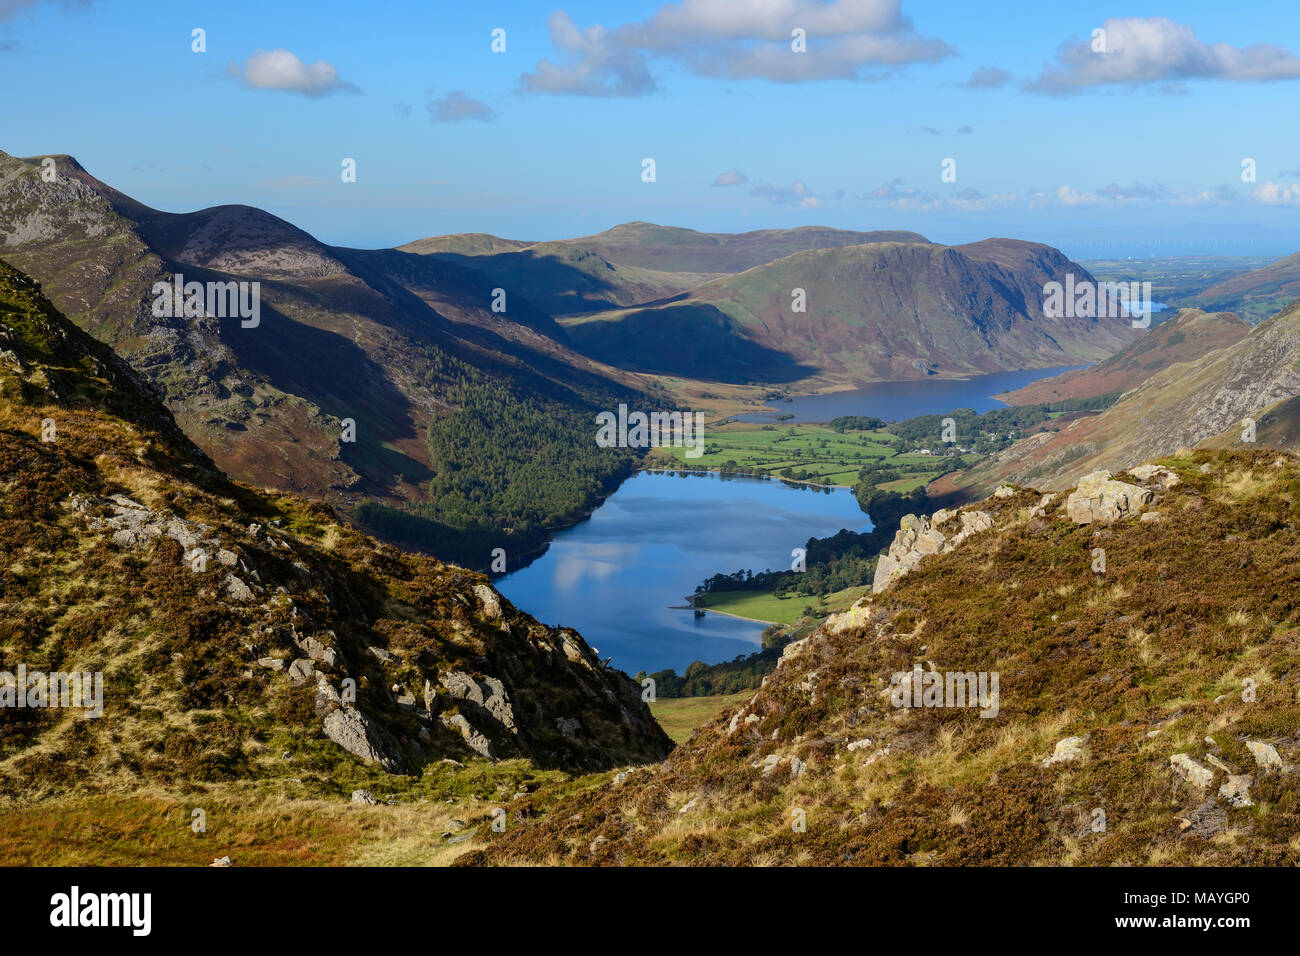 View over Buttermere and Crummock Water from Fleetwith Pike in the Lake District National Park in Cumbria, England Stock Photo